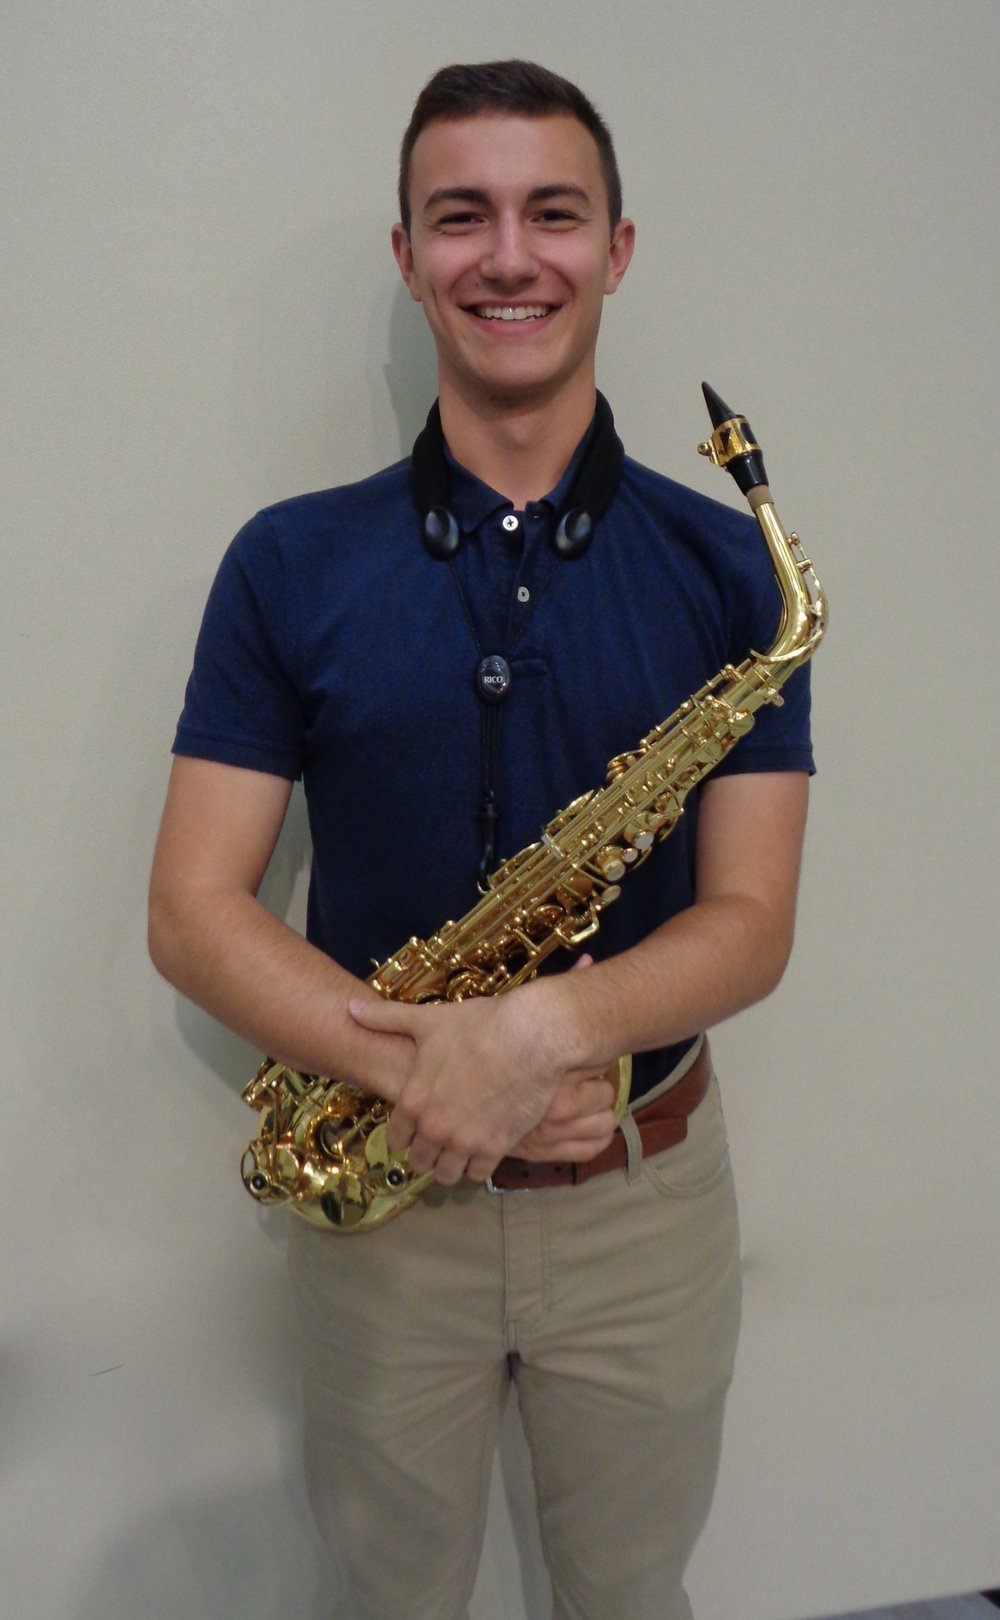 Jacob bernat,  Music Education newmanstown, PA